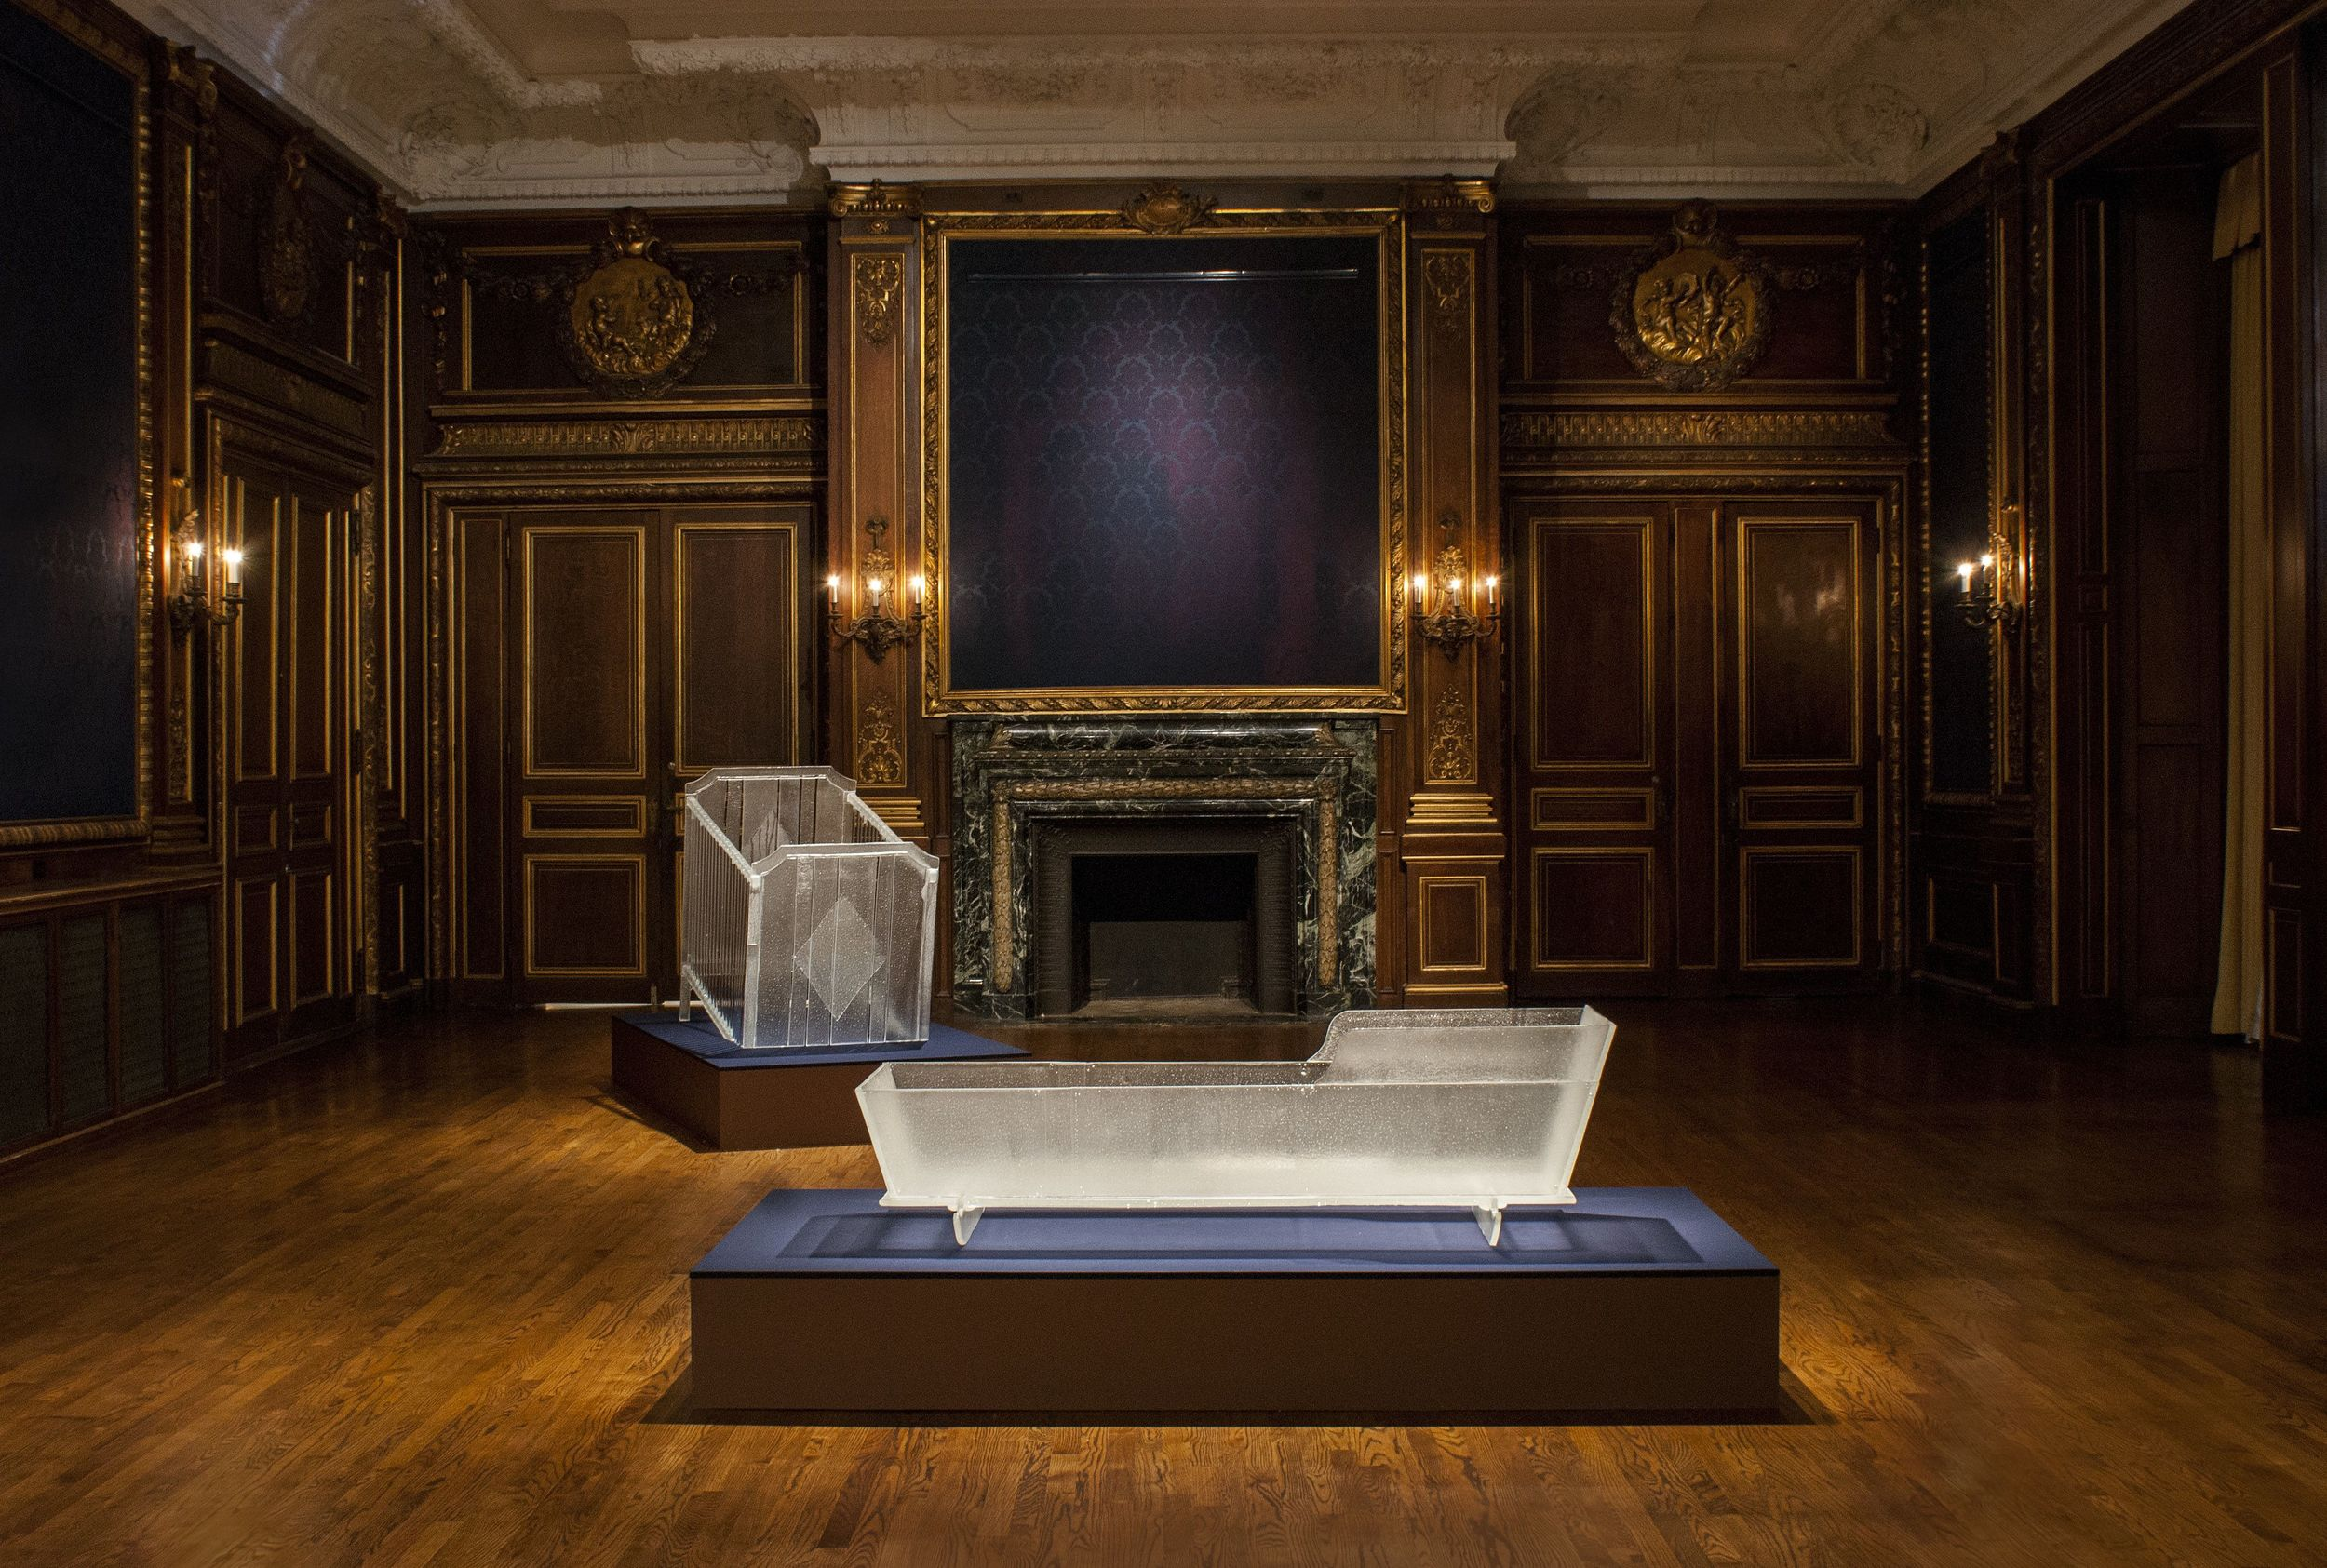 Installation of Crib and Cradle in Precarious Possessions, photo credit: John and Mable Ringling Museum of Art